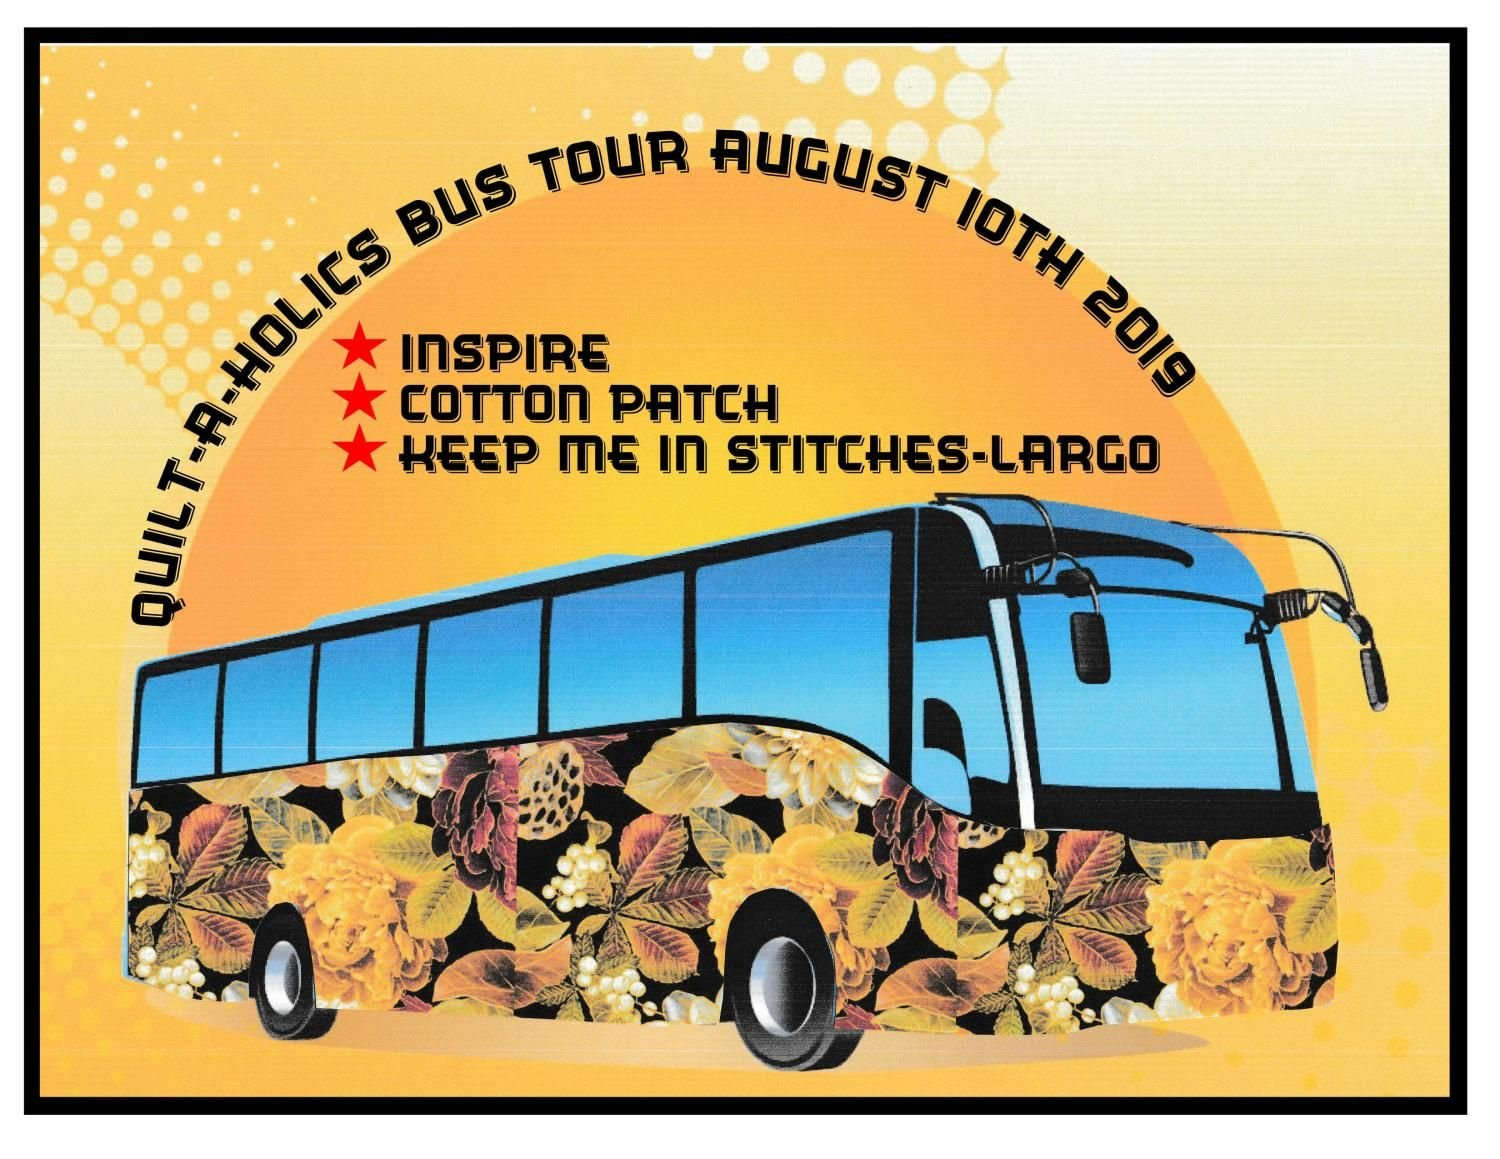 Quilt-A-Holics One Day Bus Tour